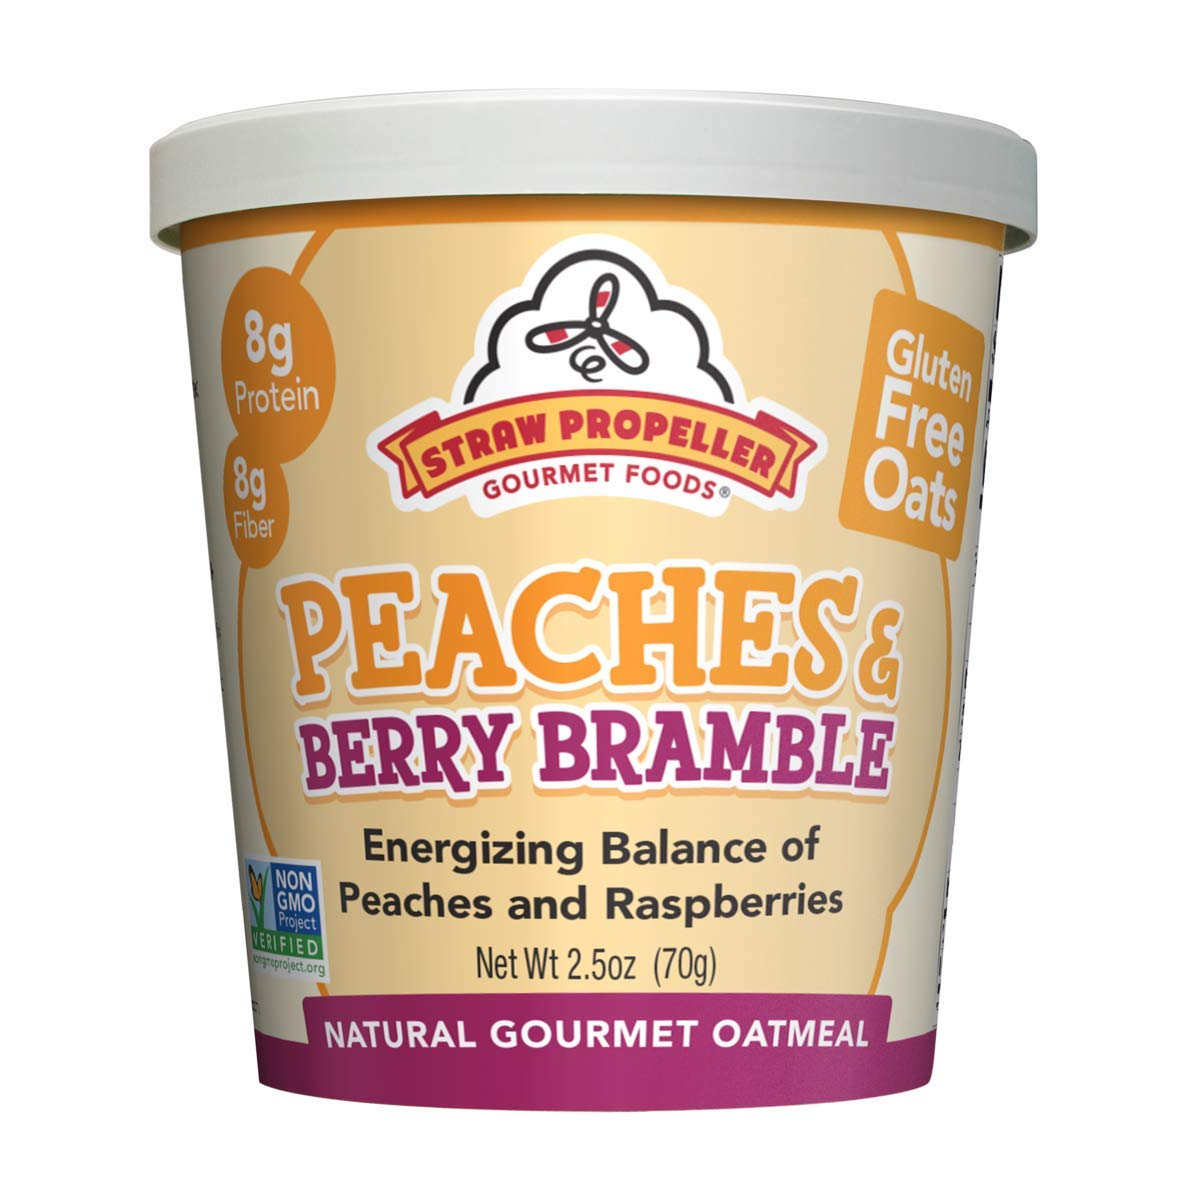 Straw Propeller Peaches & Berry Bramble Oatmeal (Case of 12)